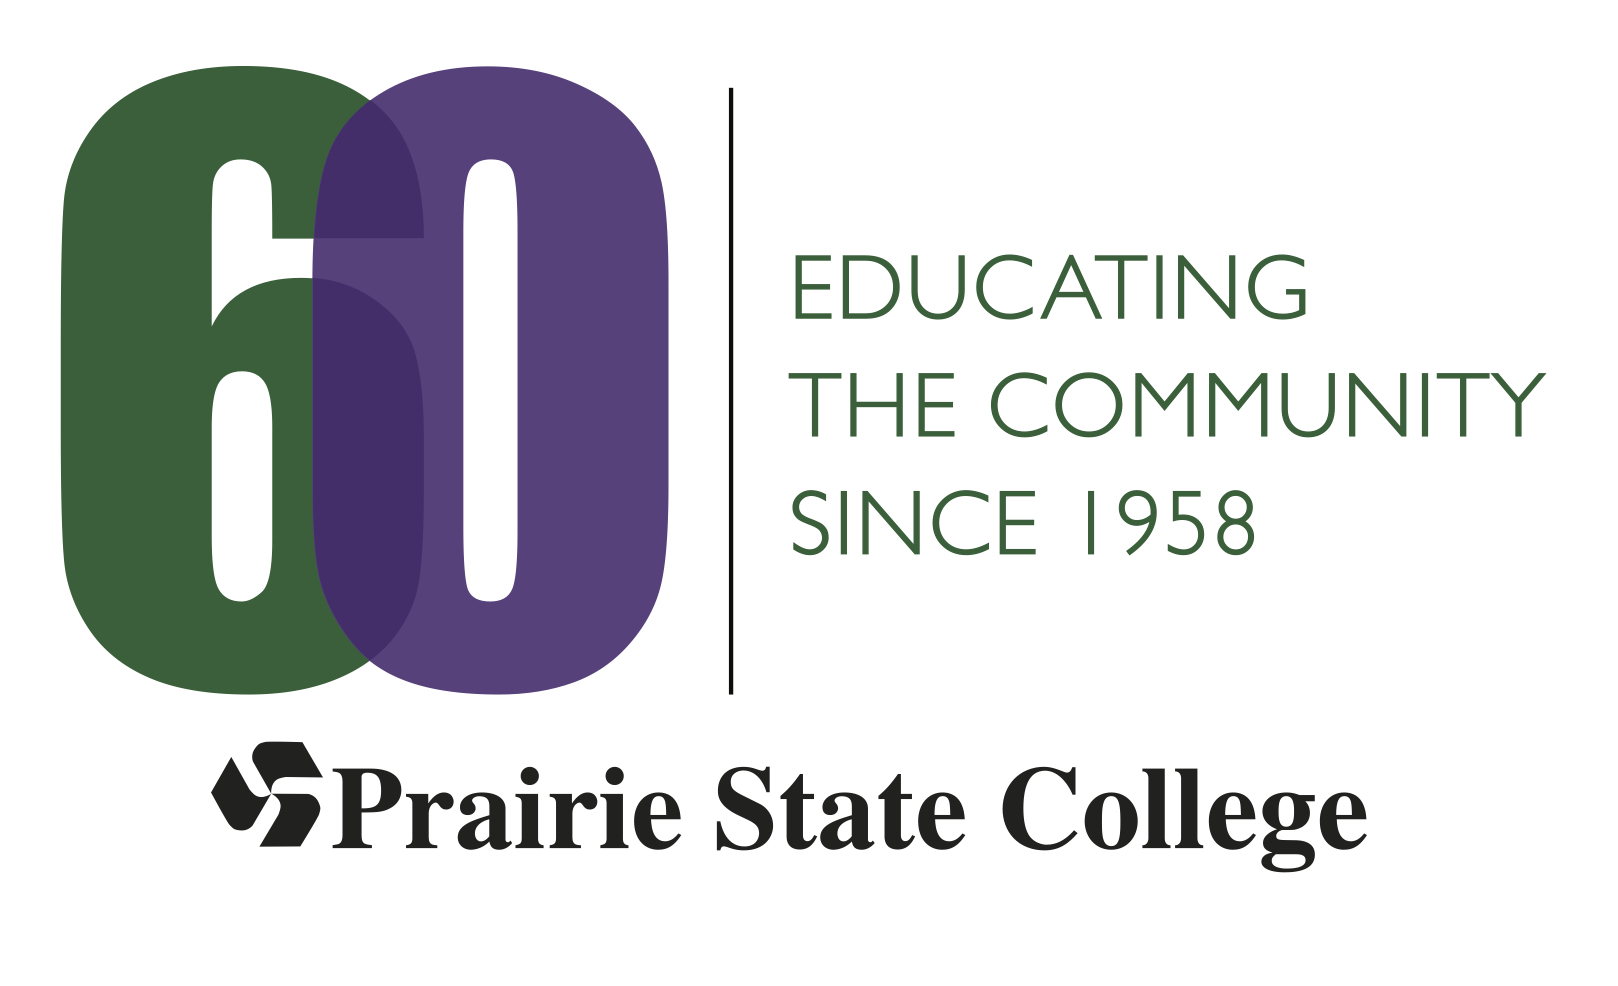 Chicago Heights Community Invited to Attend Celebration of PSC's